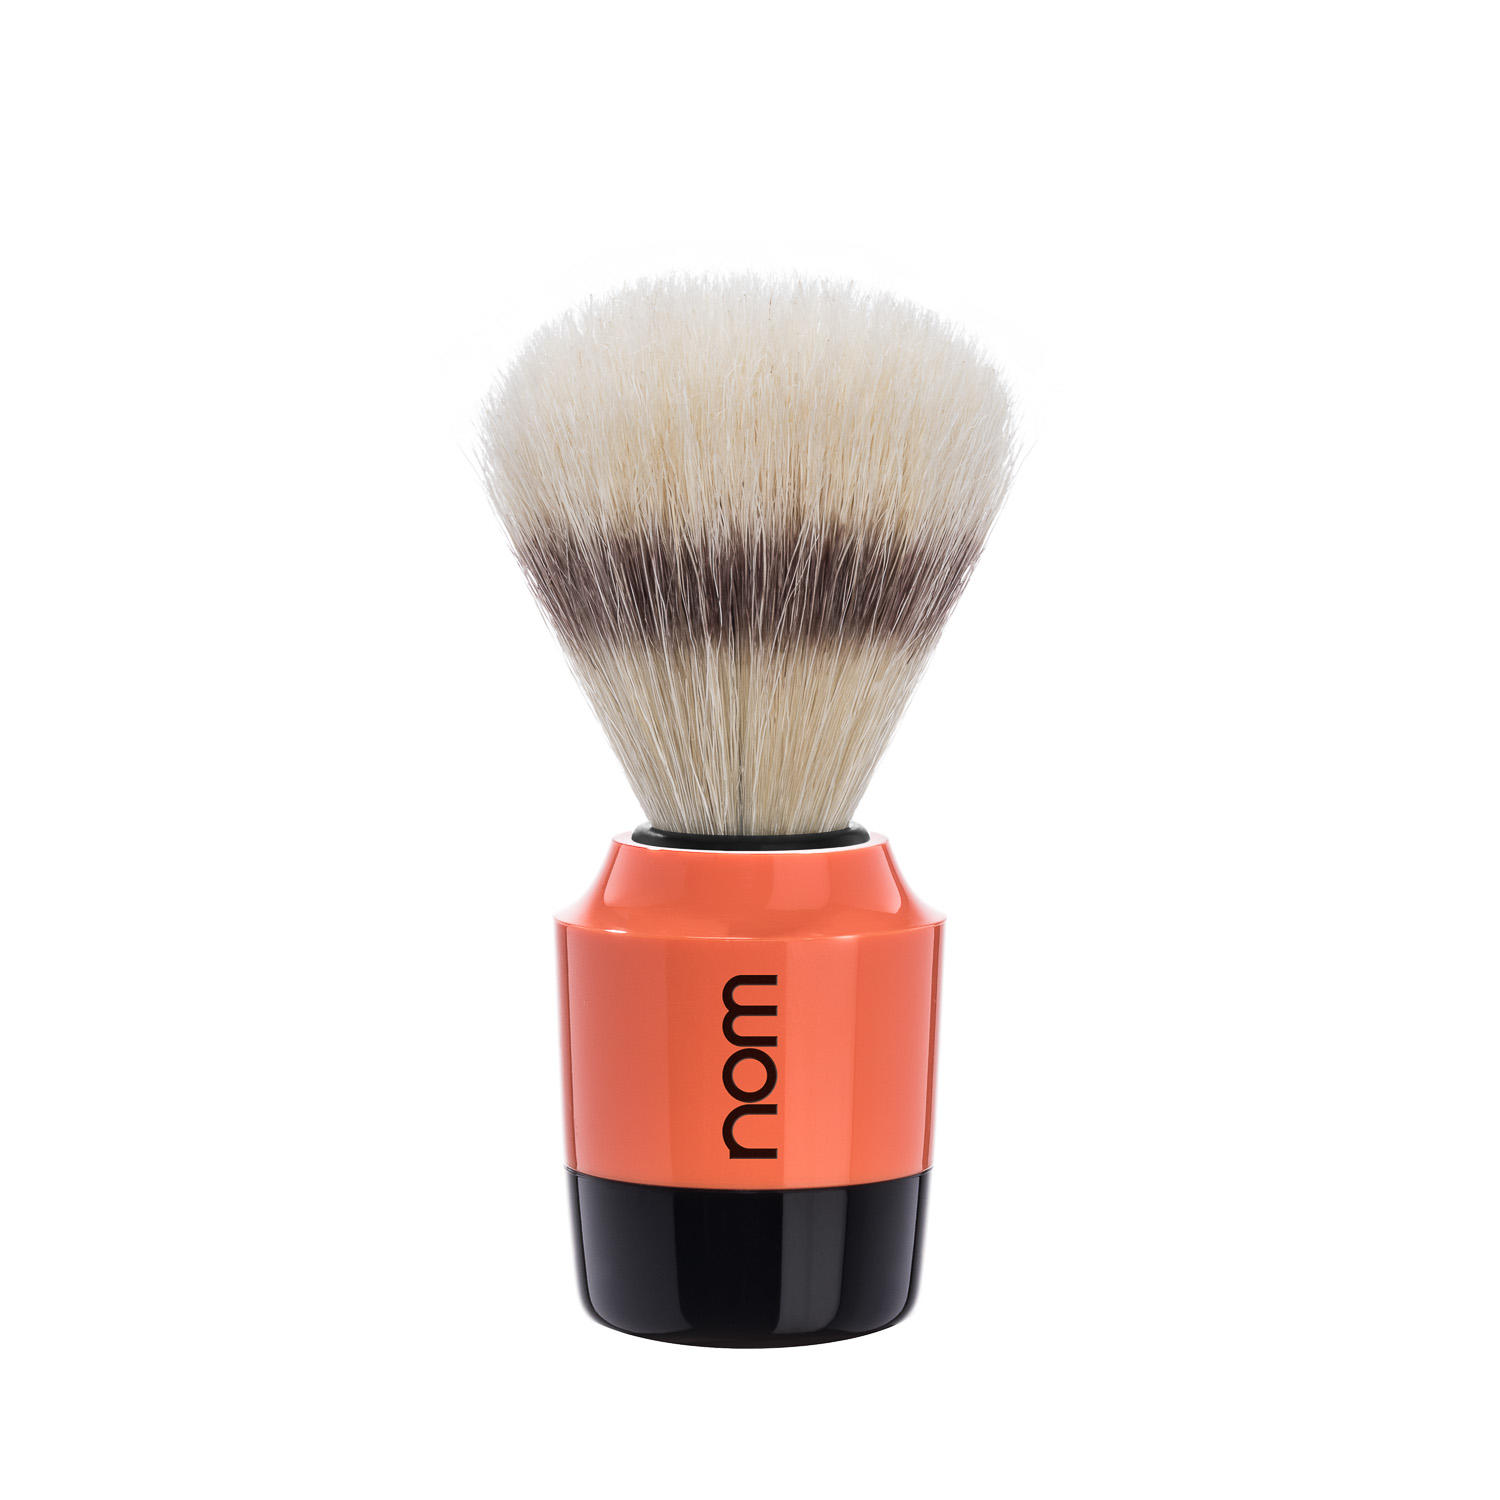 MARTEN41CO NOM, MARTEN Coral, Pure Bristle Shaving Brush